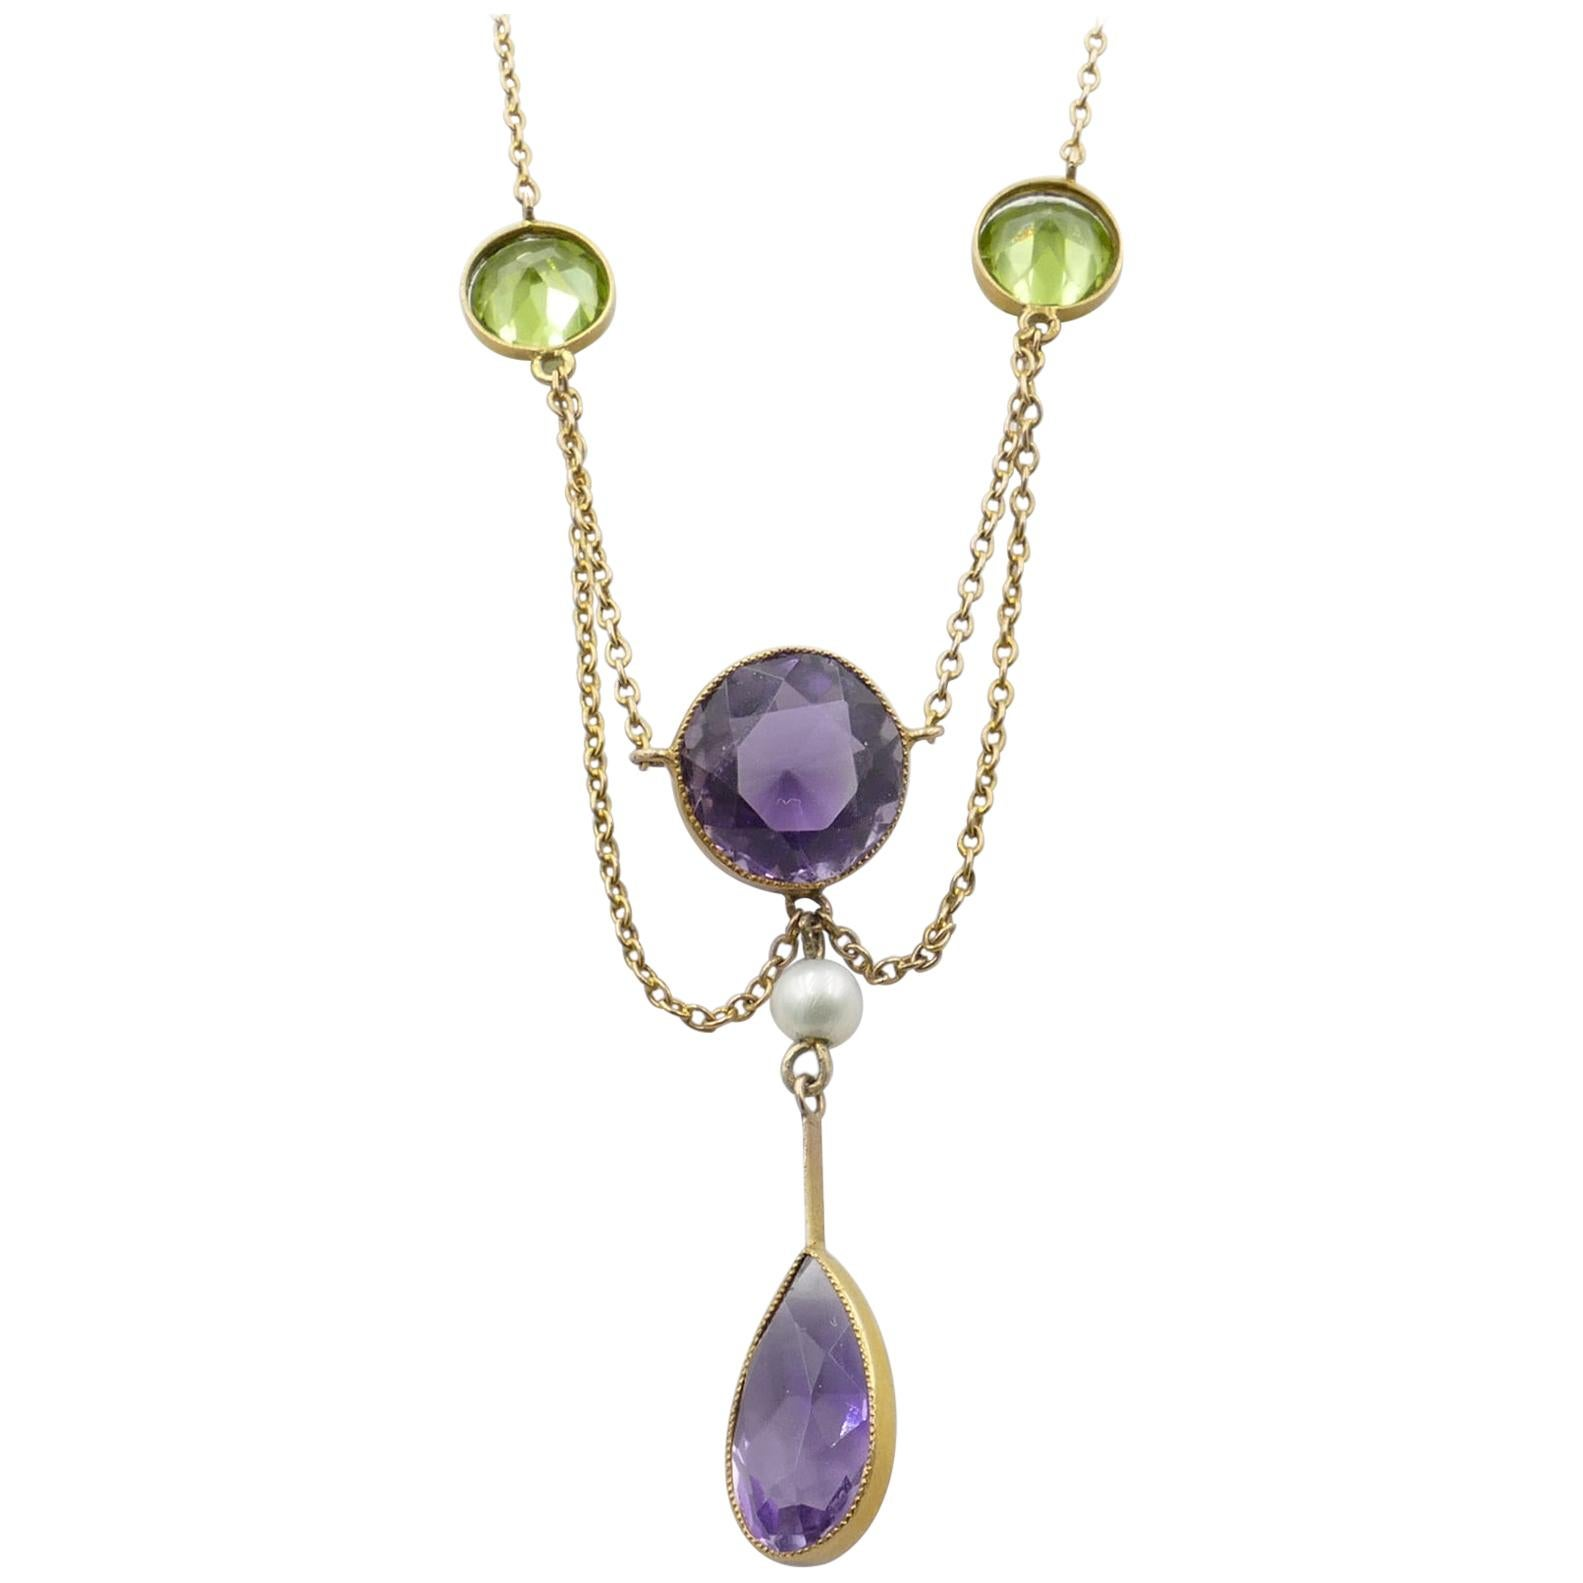 Suffragette Edwardian Yellow Gold Amethyst, Peridot and Pearl Festoon Necklace